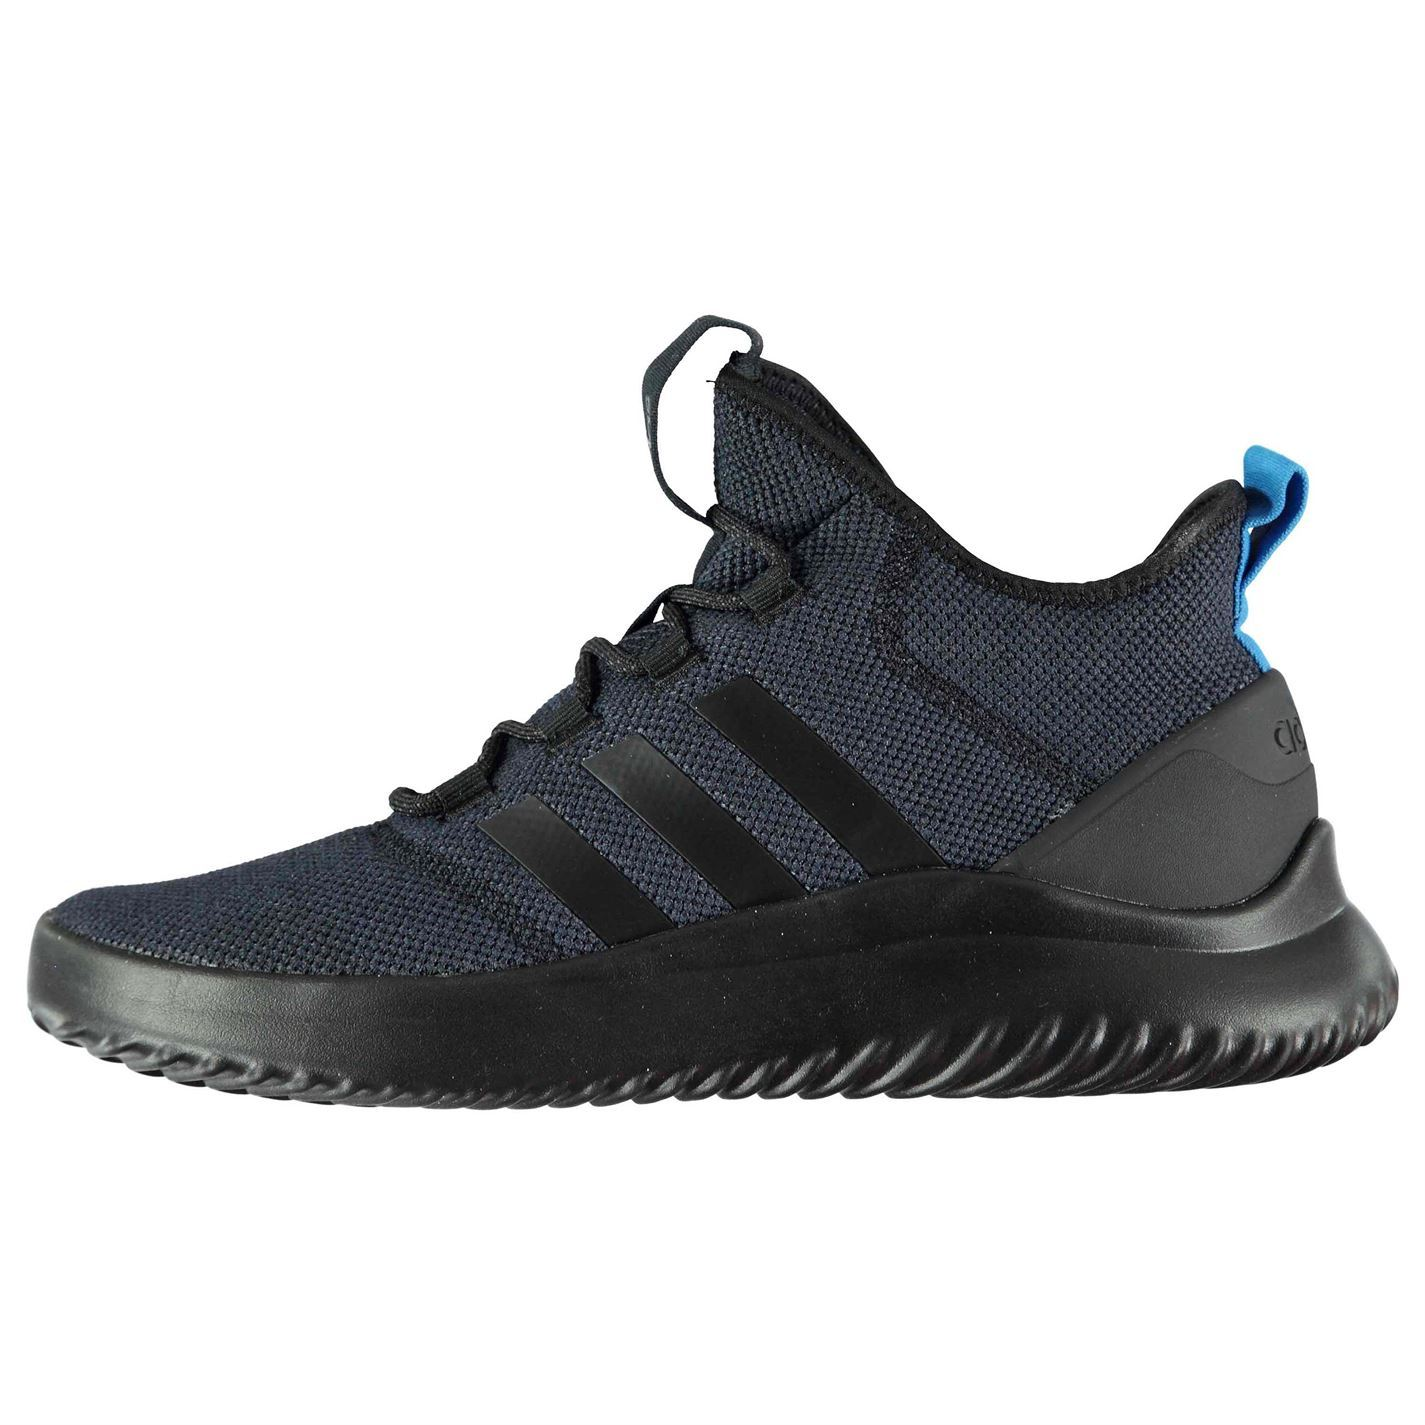 lowest price 807dc c4be1 adidas Cloudfoam Ultimate Basketball Shoes Mens Black Trainers Sneakers